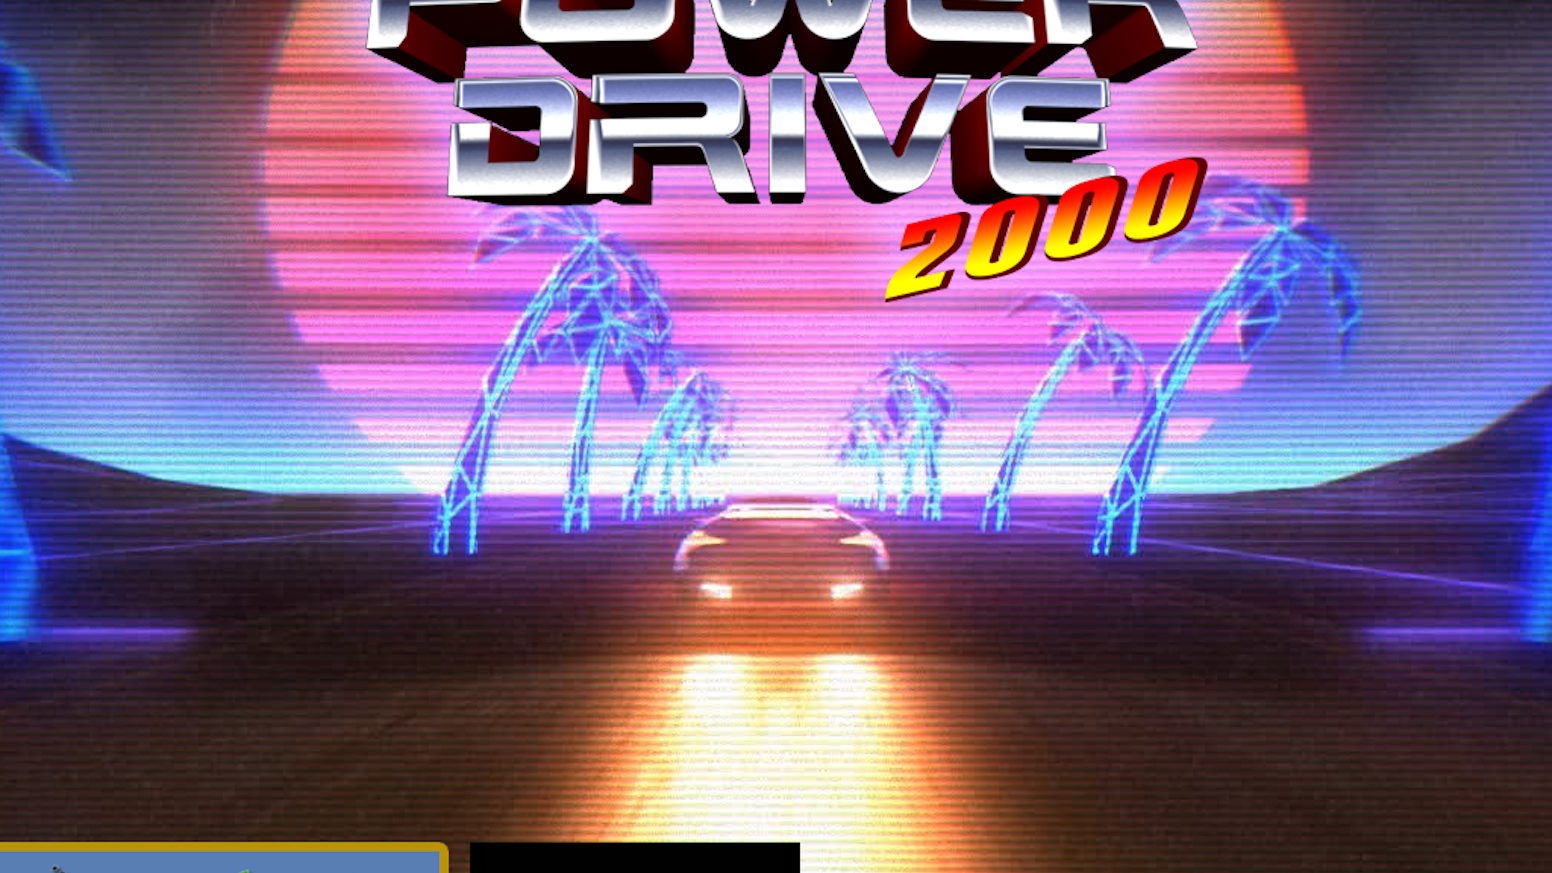 An 80's sci-fi inspired arcade racer...with a talking car.